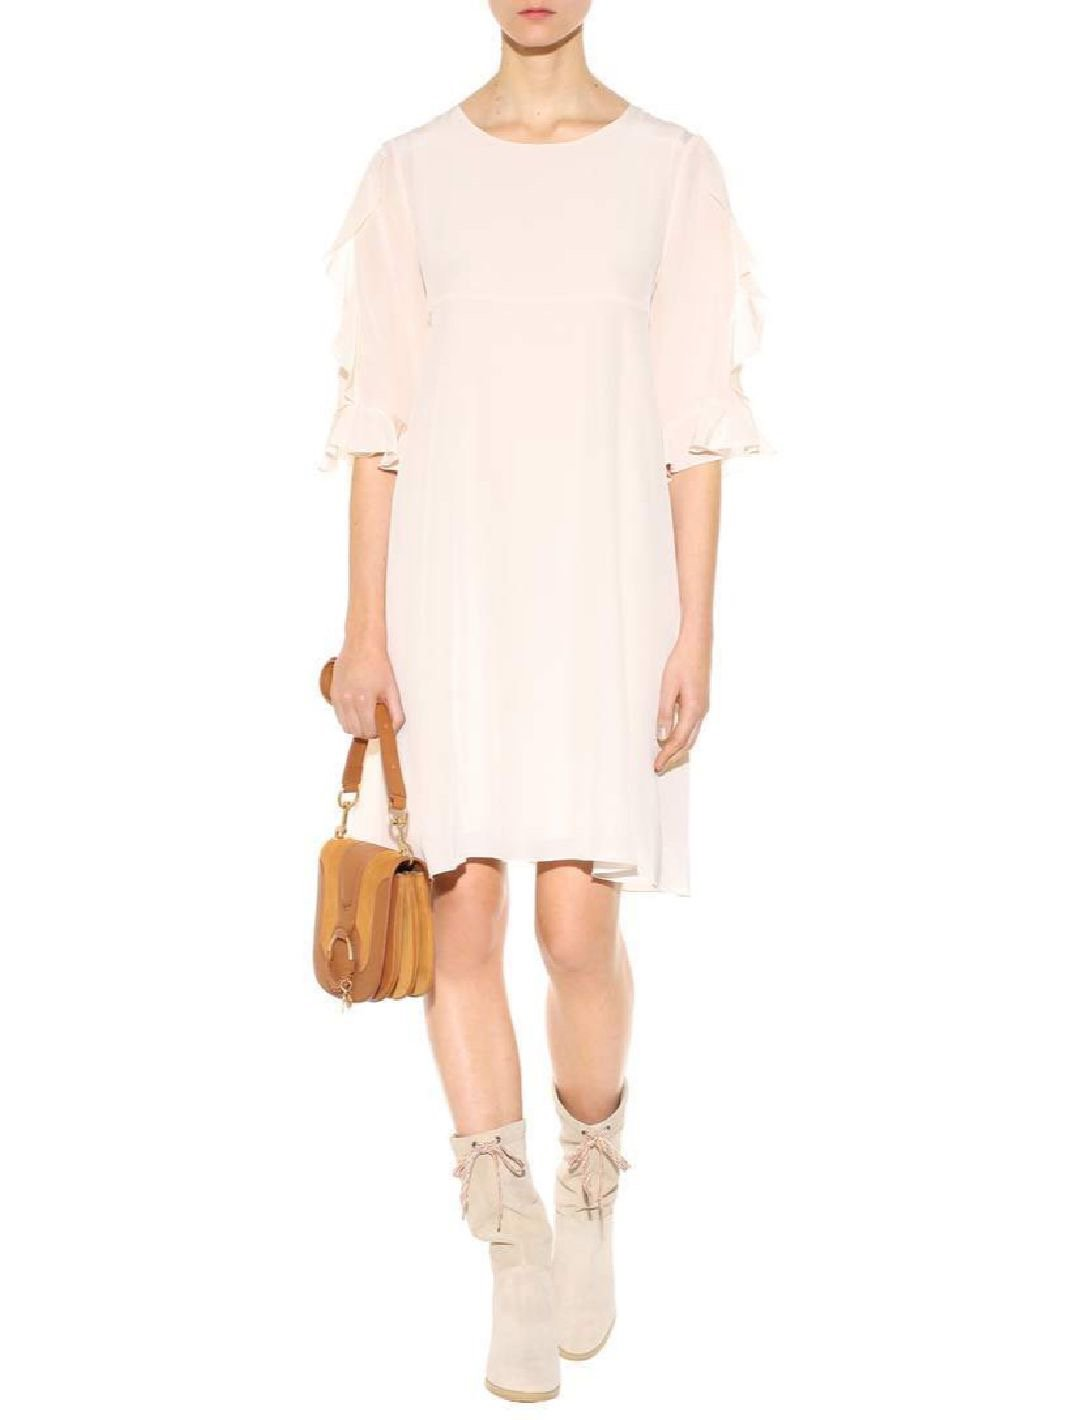 Silk Crepe De Chine Dress - The Bobby Boga